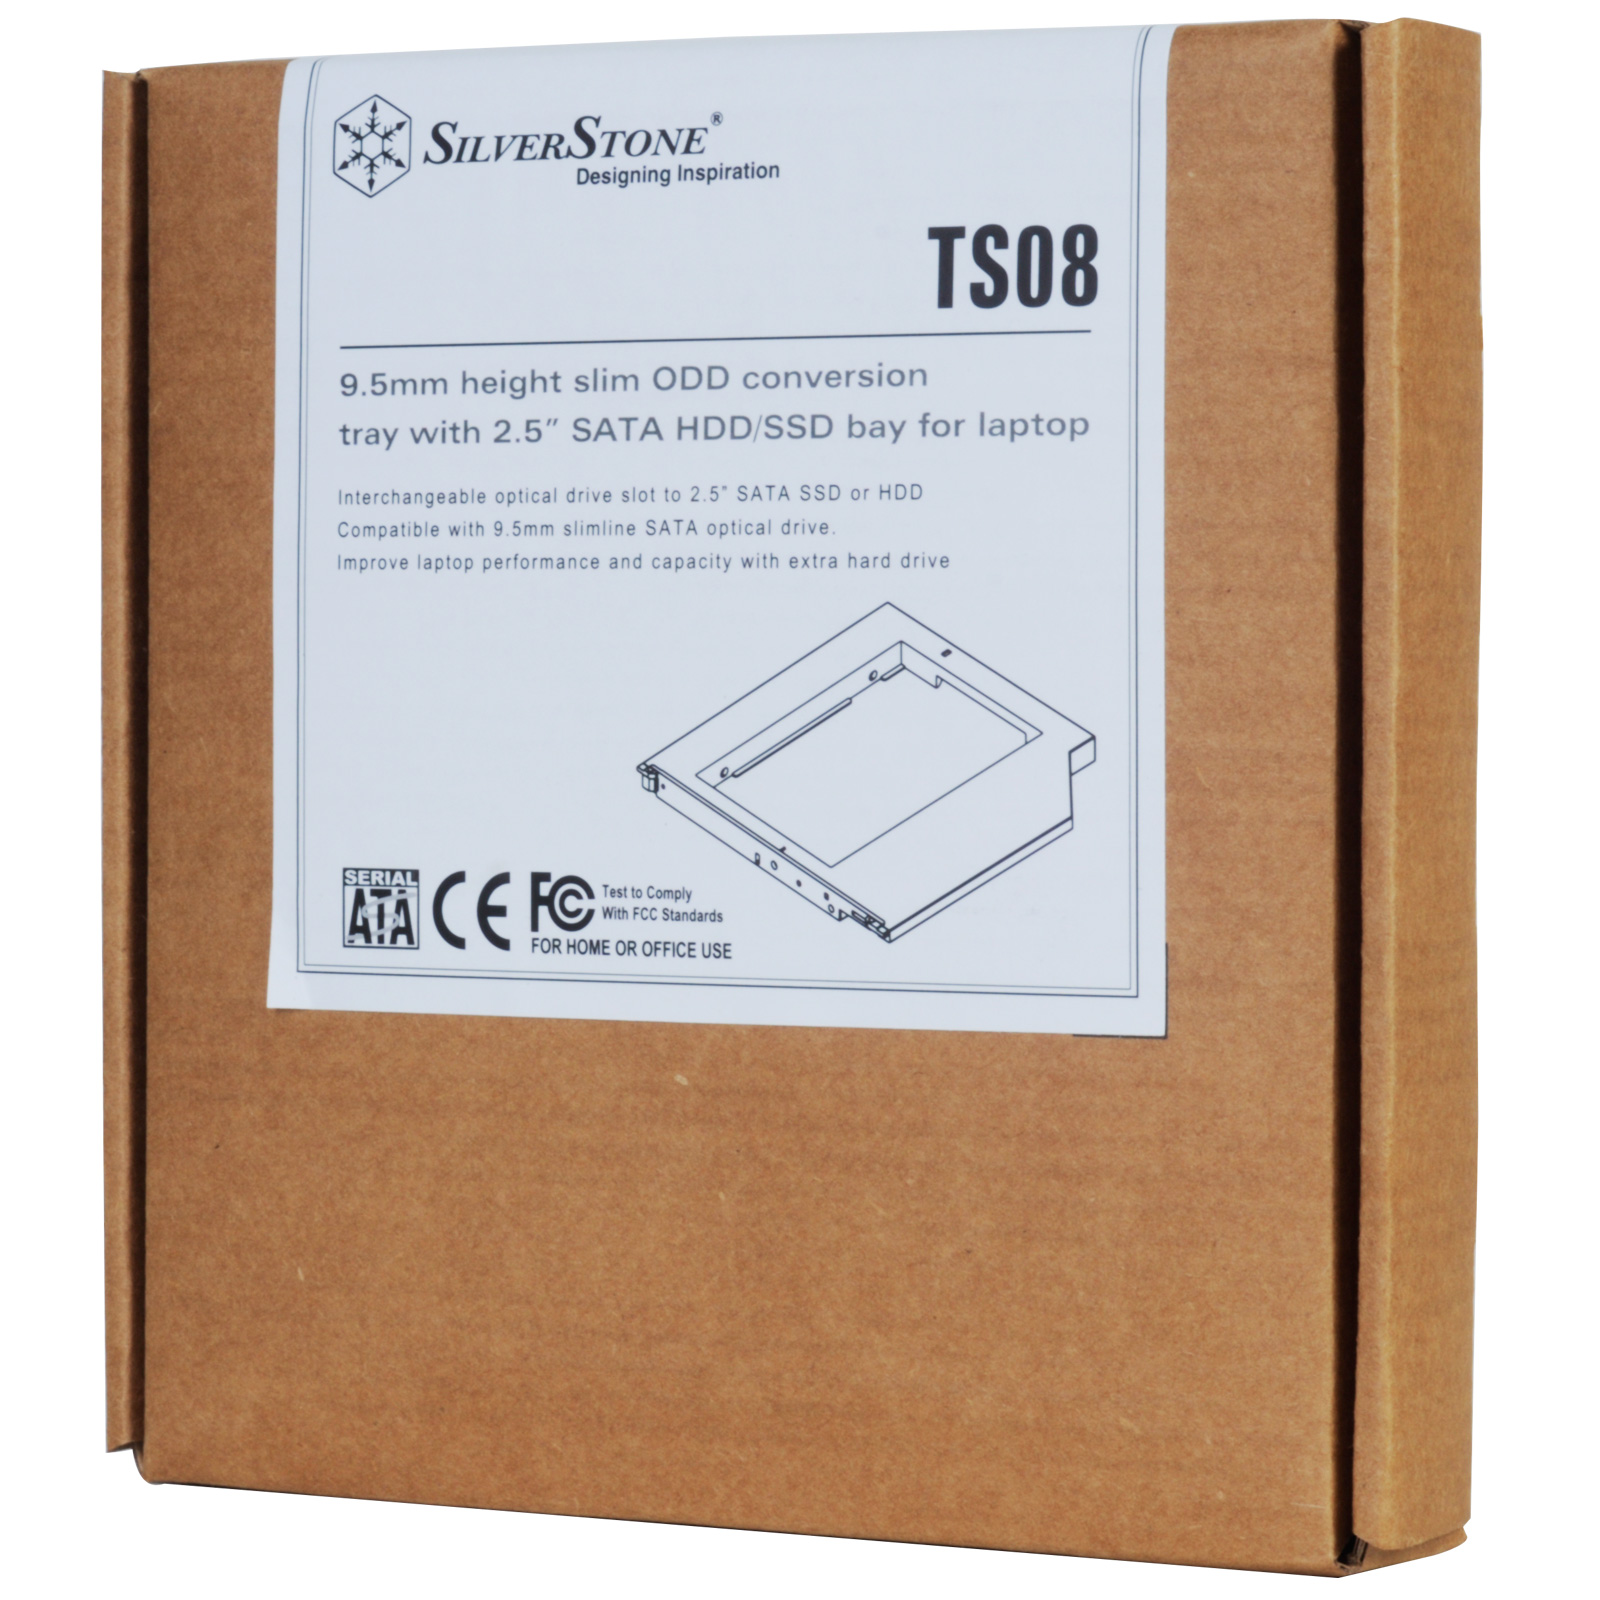 SilverStone TS08 ODD CONVERSION TRAY FOR LAPTOP 9.5MM HEIGHT